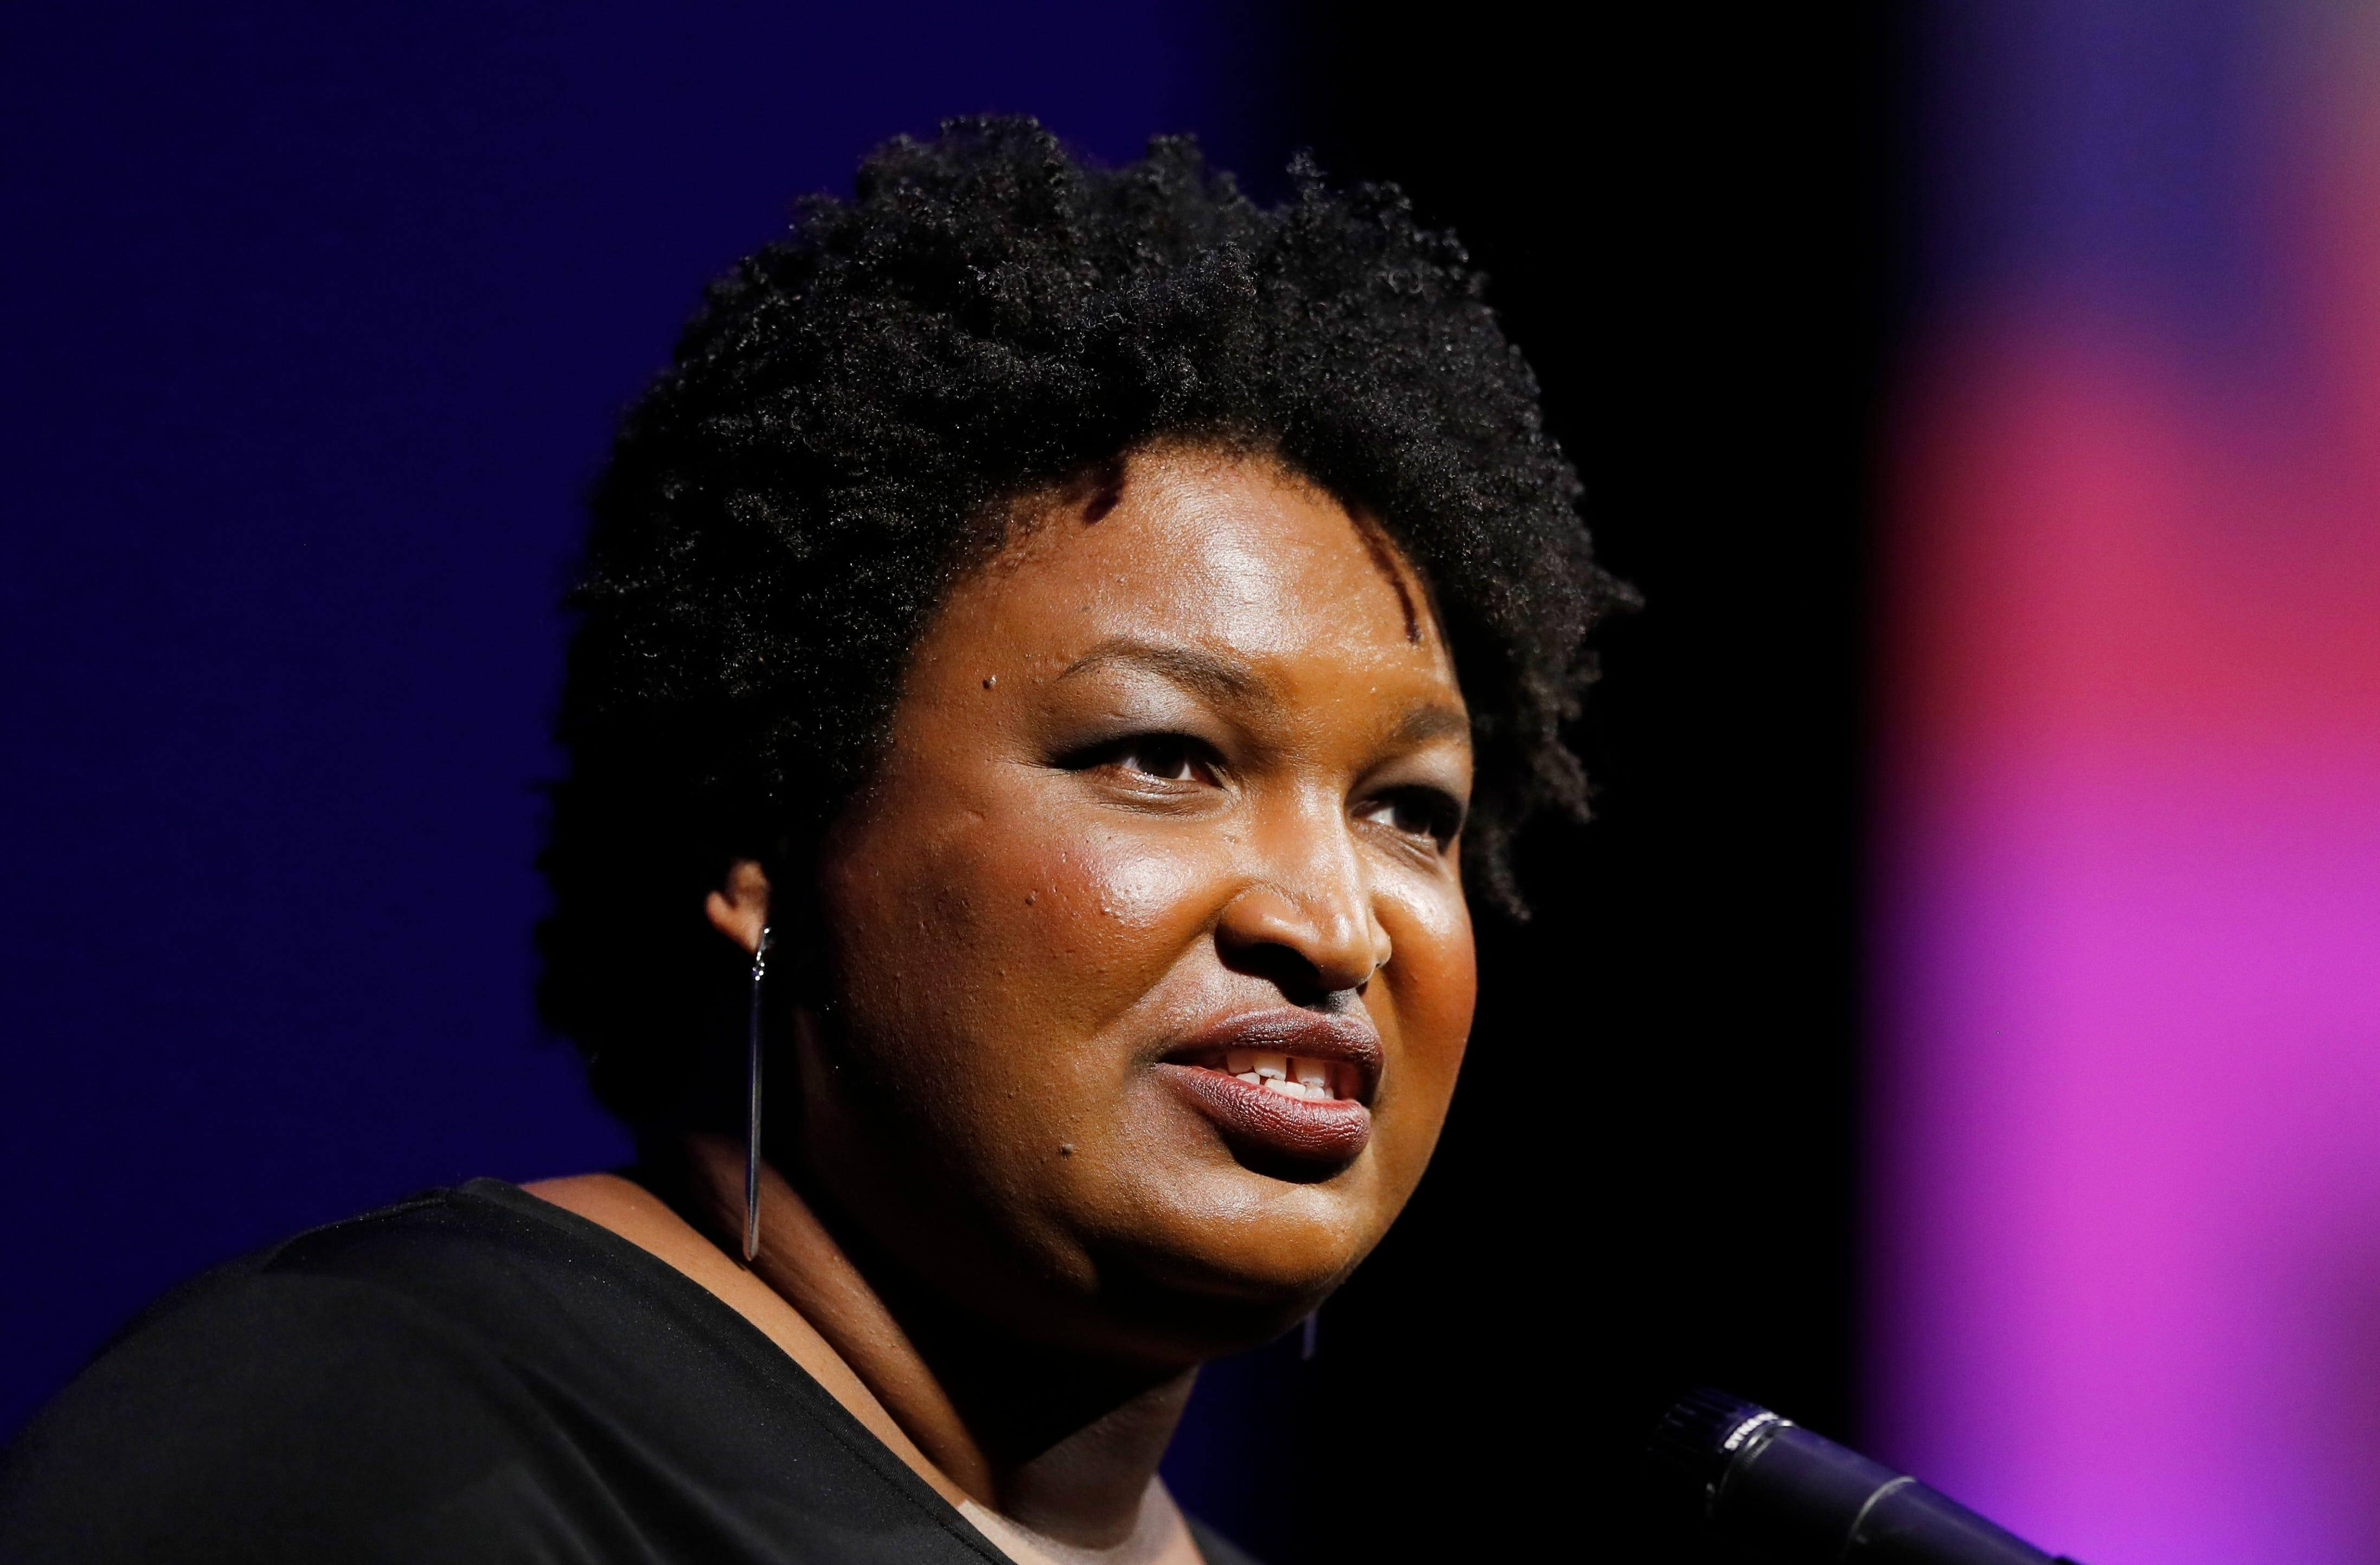 Stacey Abrams: I'd be 'honored' to be running mate of any 2020 Dem presidential candidate